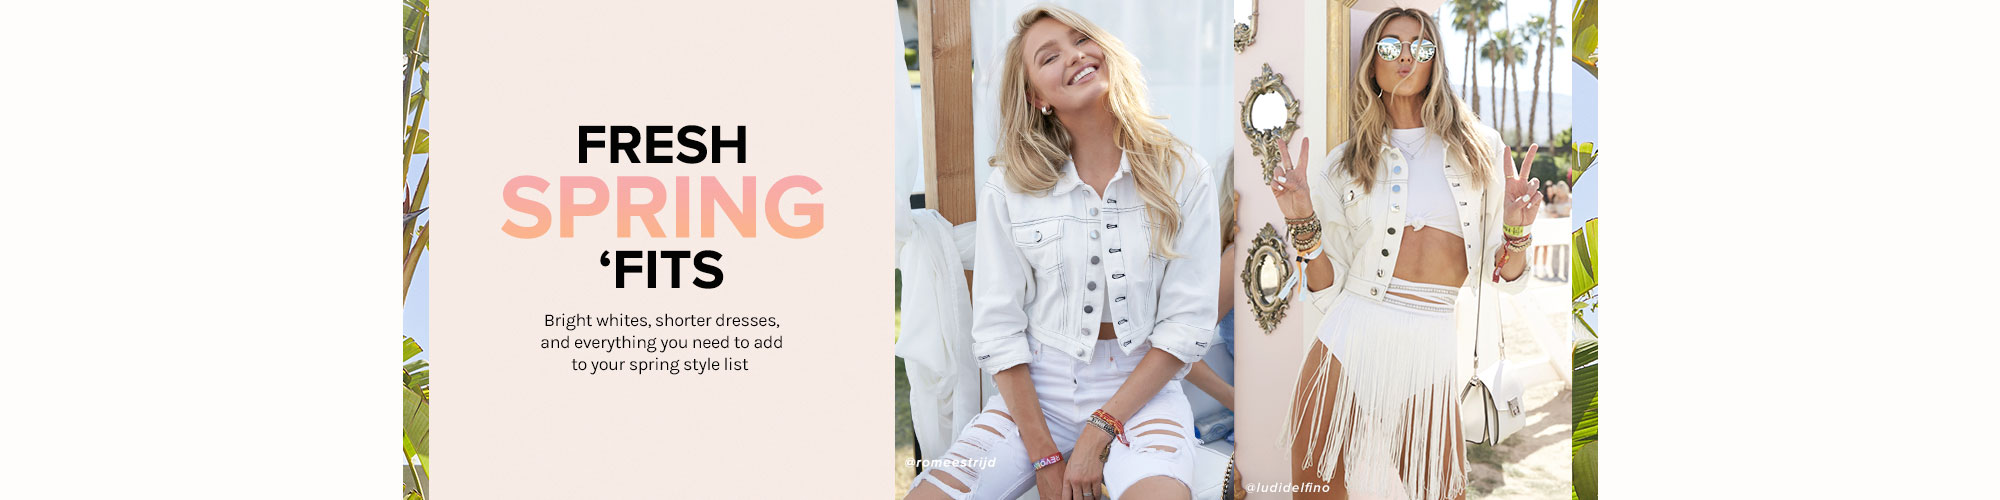 Fresh Spring \u2018Fits. Bright whites, shorter dresses, and everything you need to add to your spring style list. Shop the Edit.